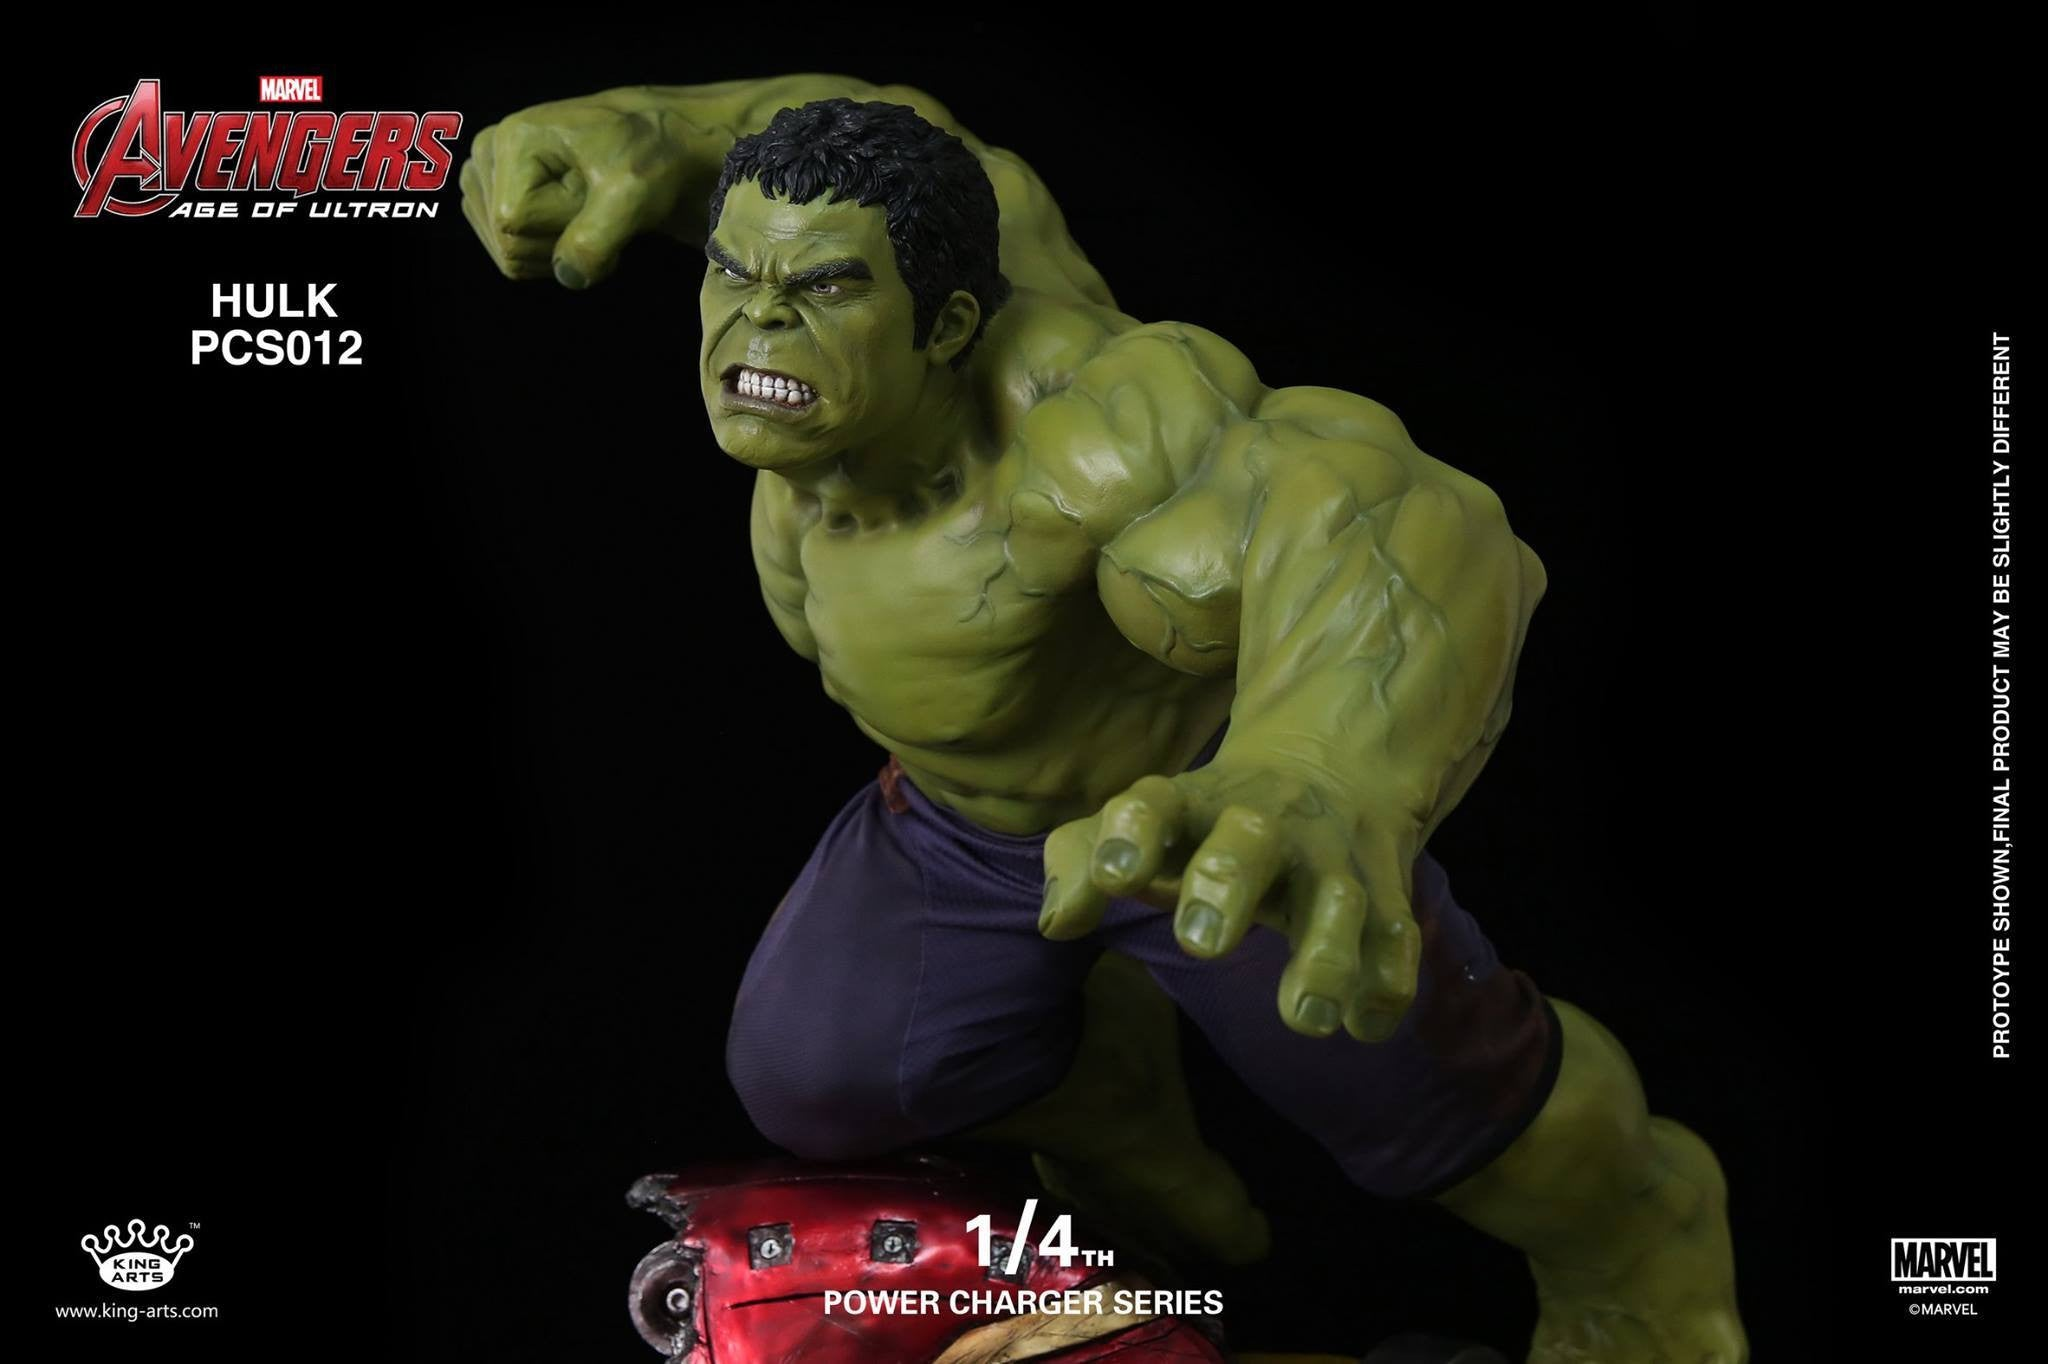 King Arts - Power Charger Series PCS012 - Avengers: Age of Ultron - 1/4th Scale Hulk Charger - Marvelous Toys - 5